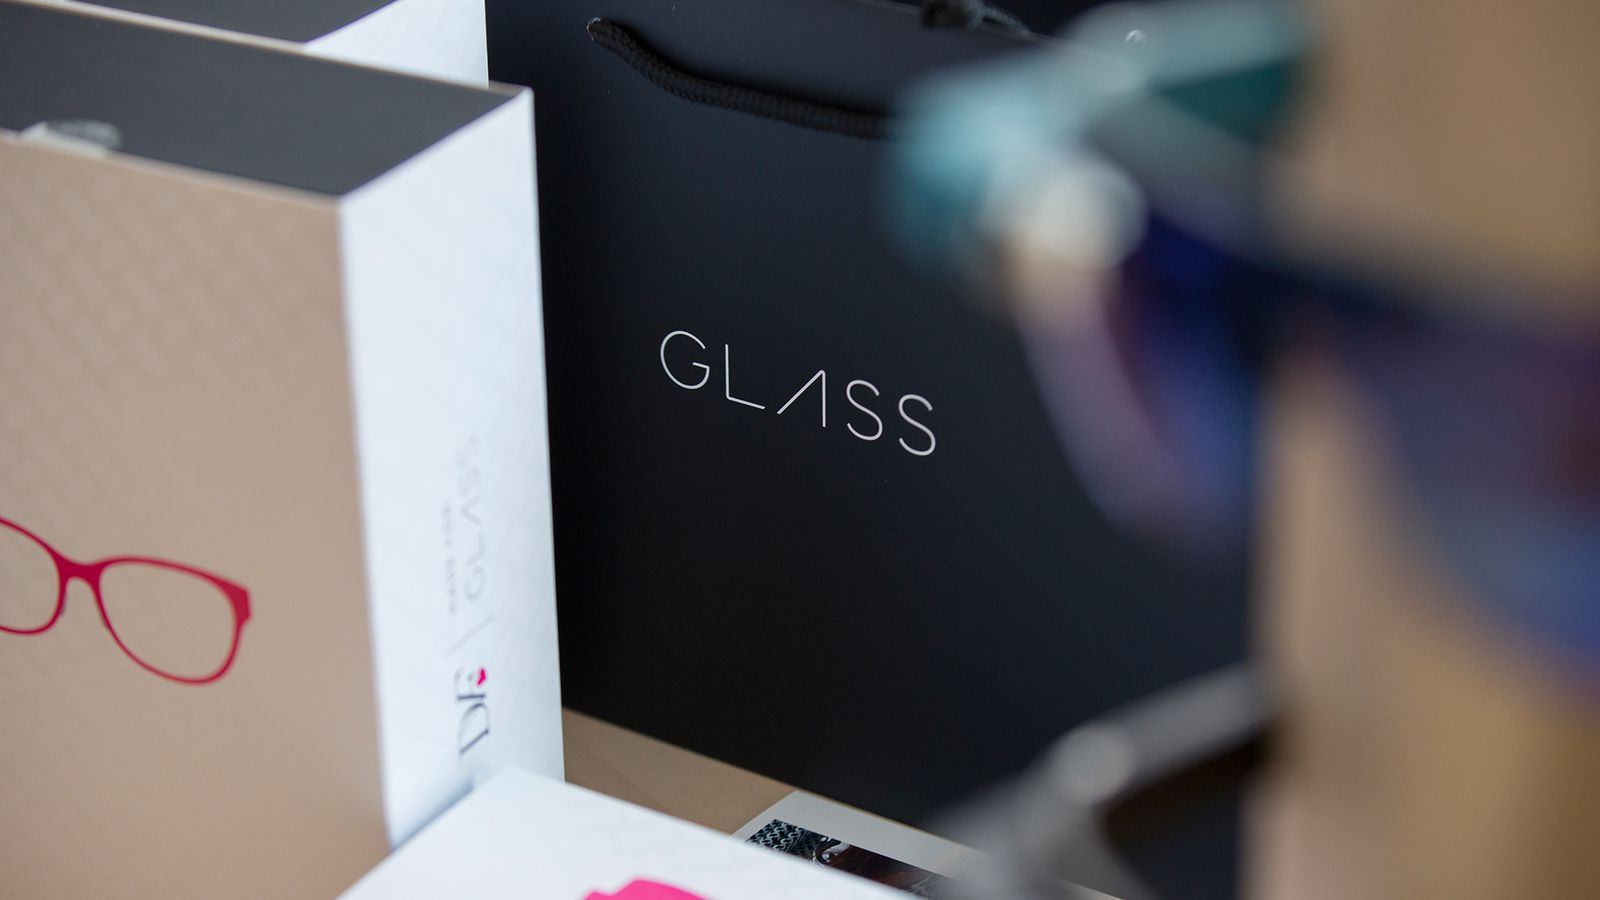 Google Glass pioneer moves to Amazon